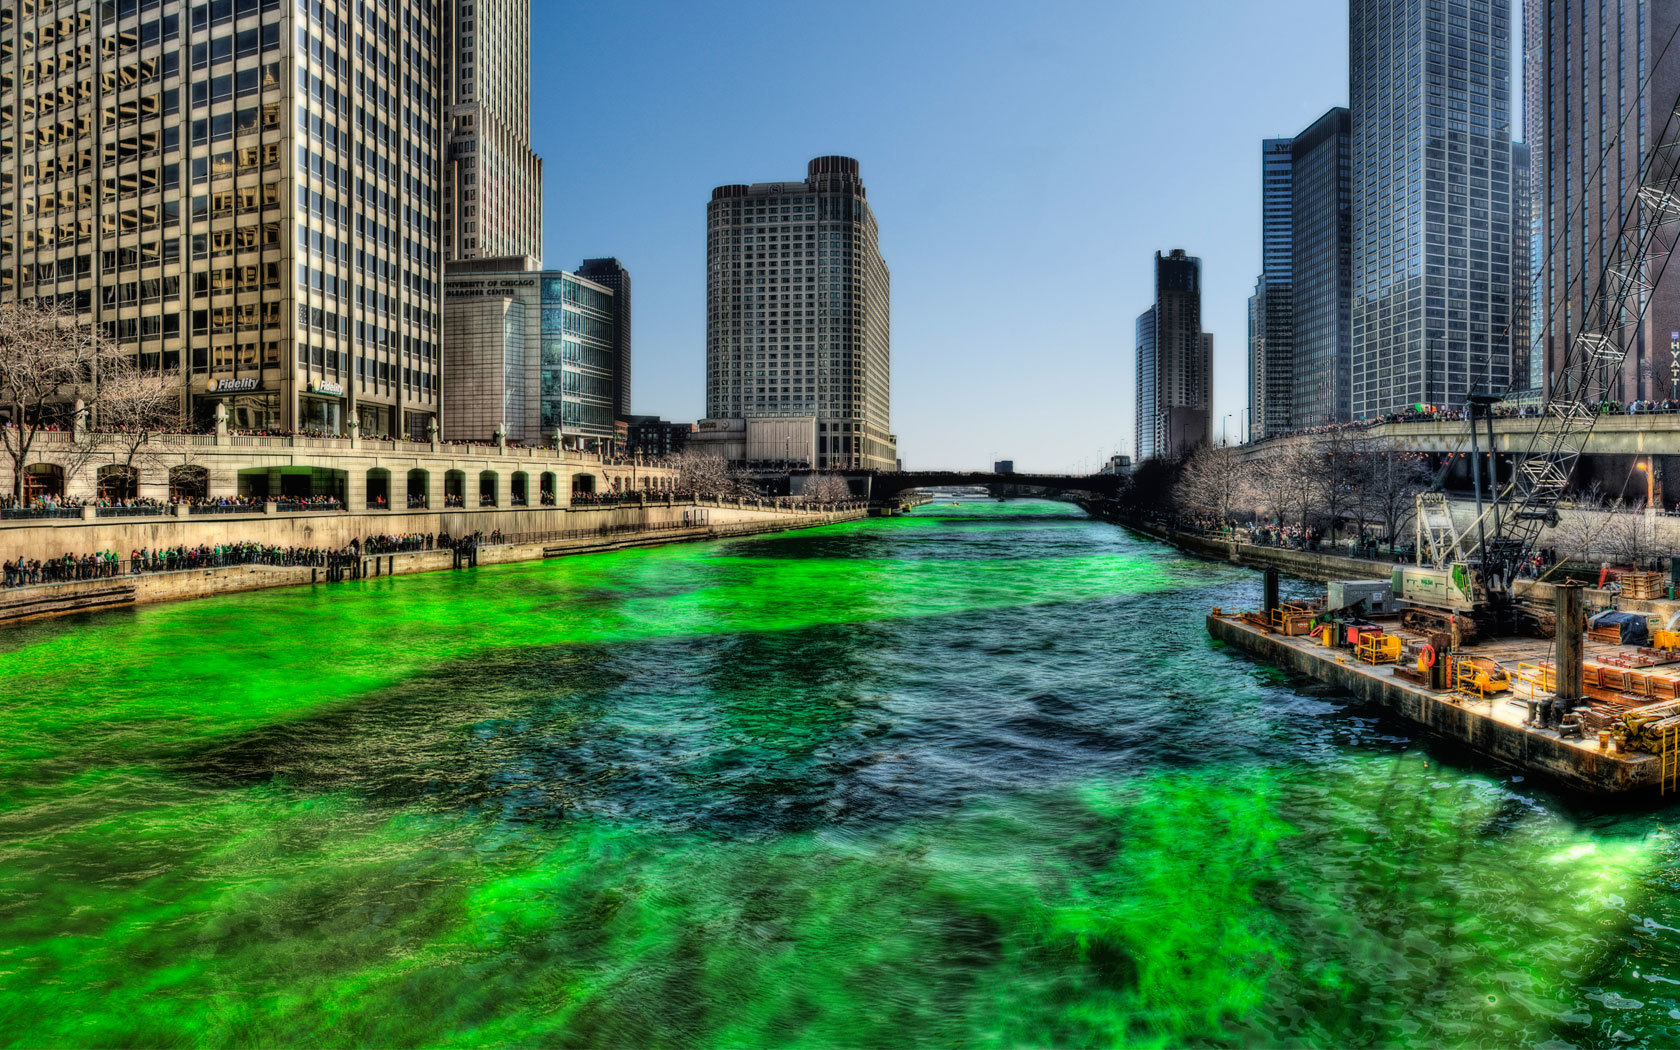 Green Chicago river on HD Wallpaper